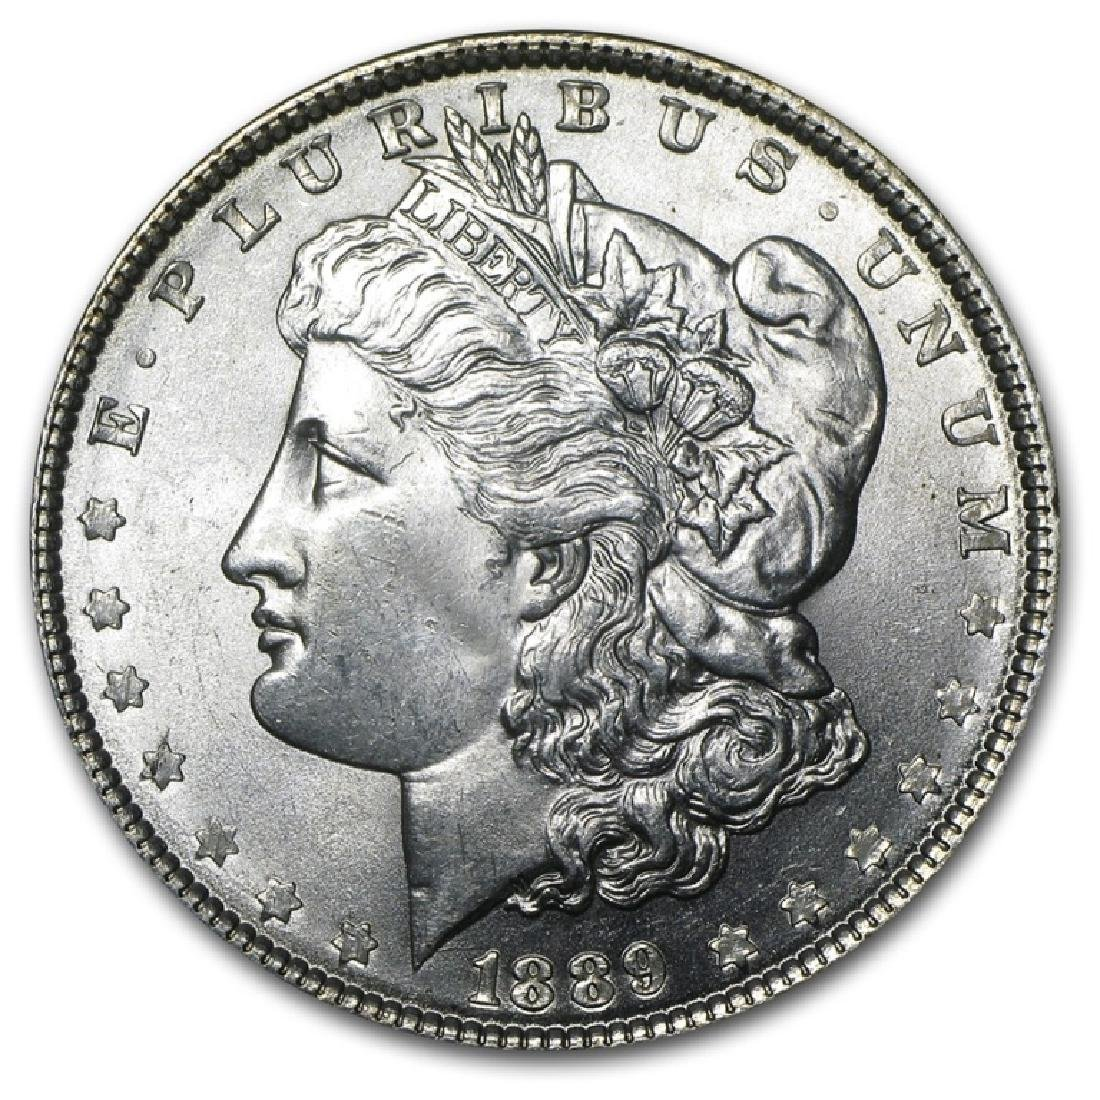 1889 P BU Morgan Silver Dollar